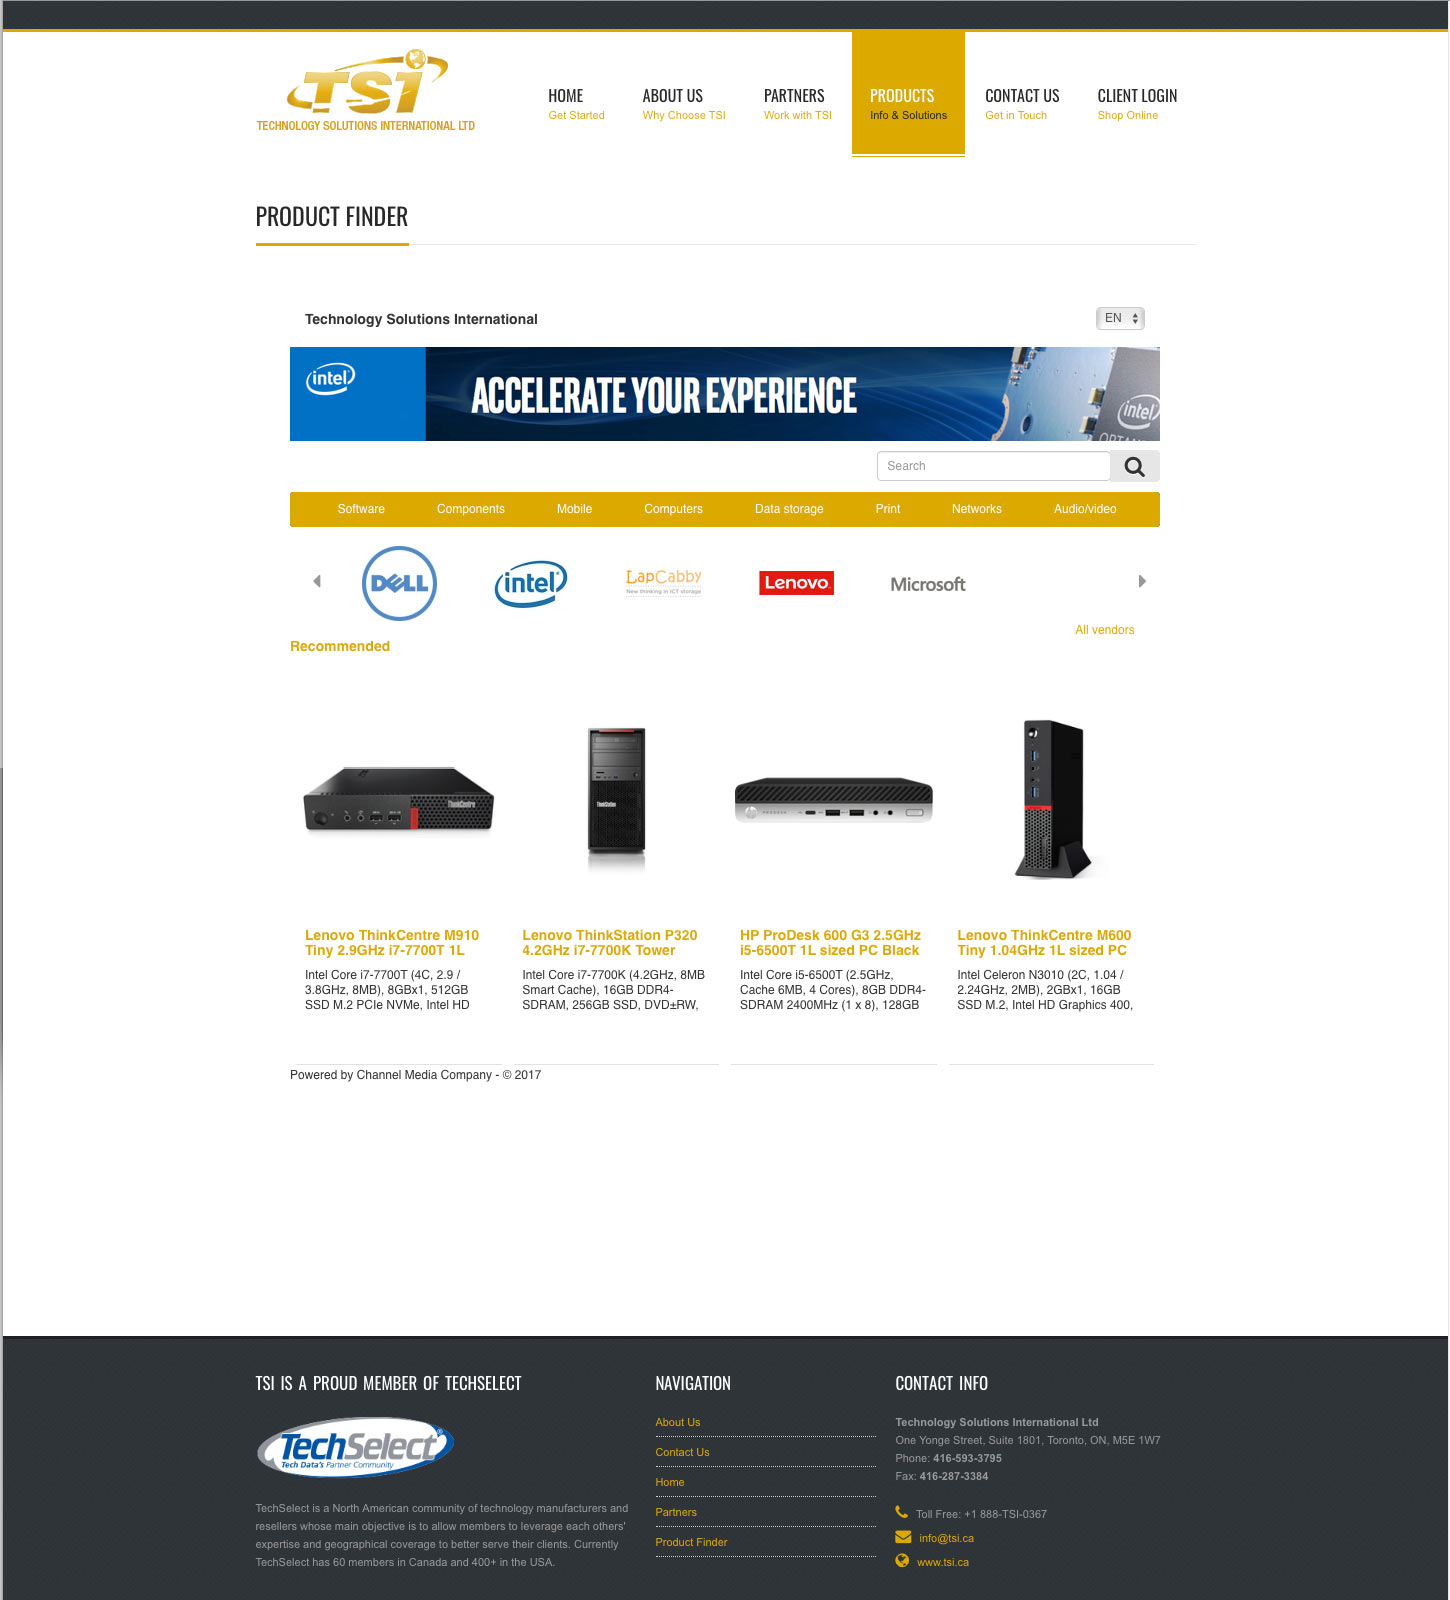 TSI.ca Responsive Website Design: Product Finder